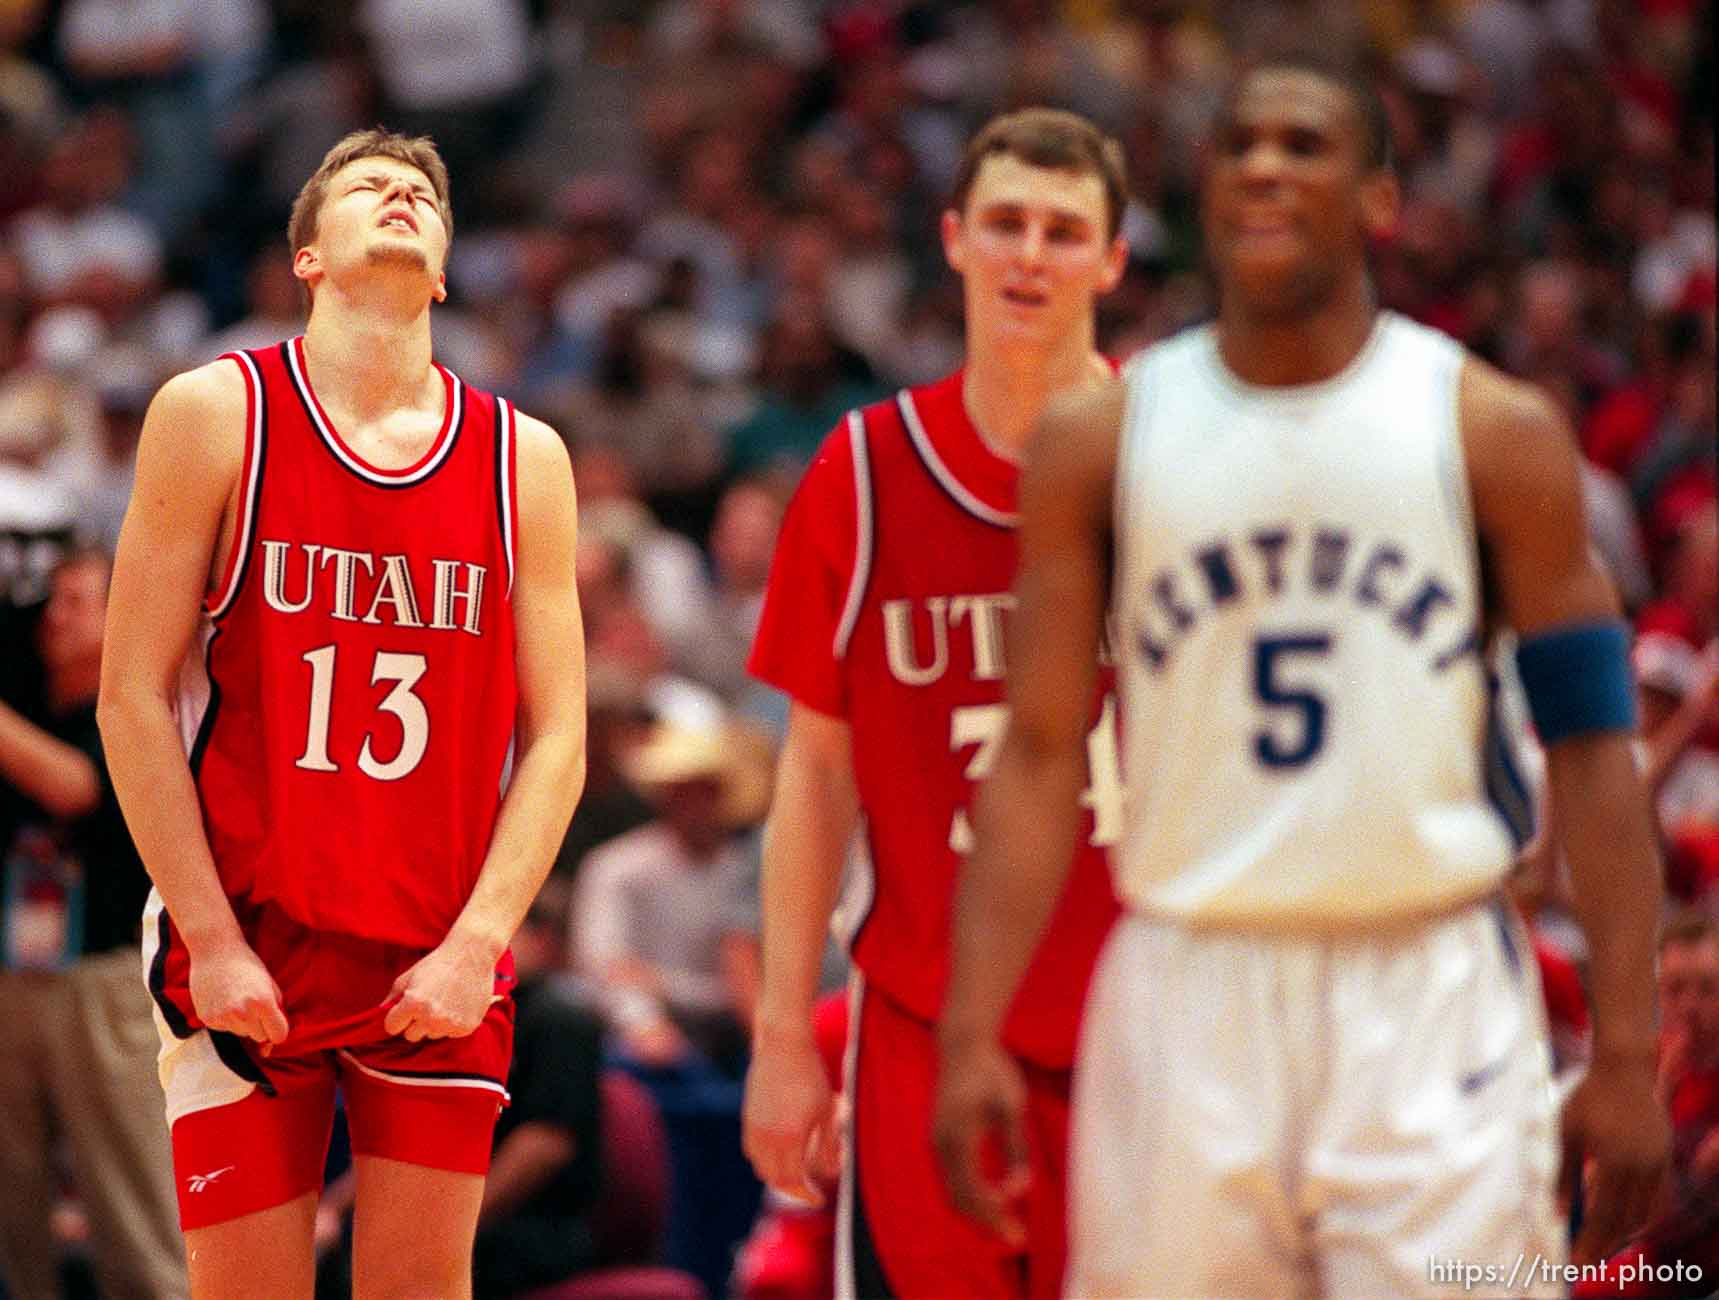 Hanno Mottola and Drew Hansen during the closing moments of their loss at Utah vs. Kentucky at the NCAA championship game.